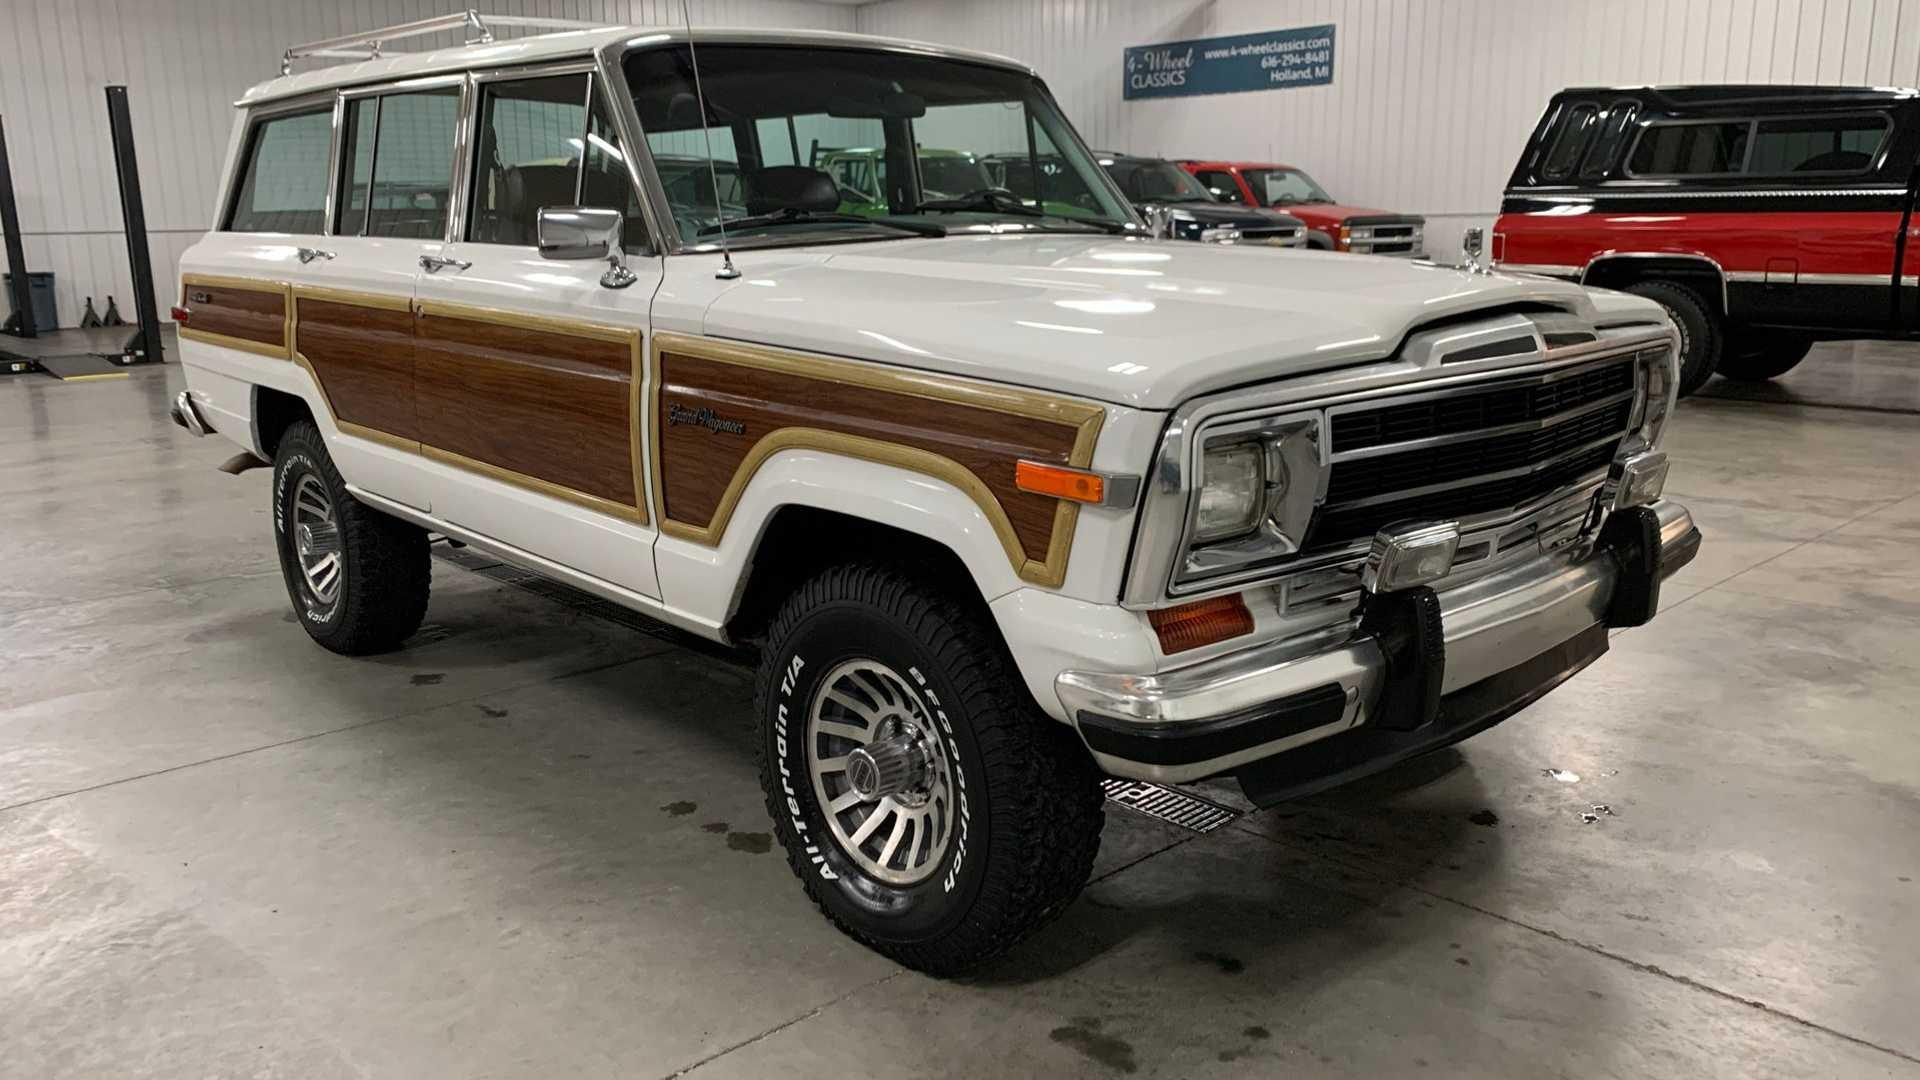 cruise hard in a 1988 jeep grand wagoneer cruise hard in a 1988 jeep grand wagoneer